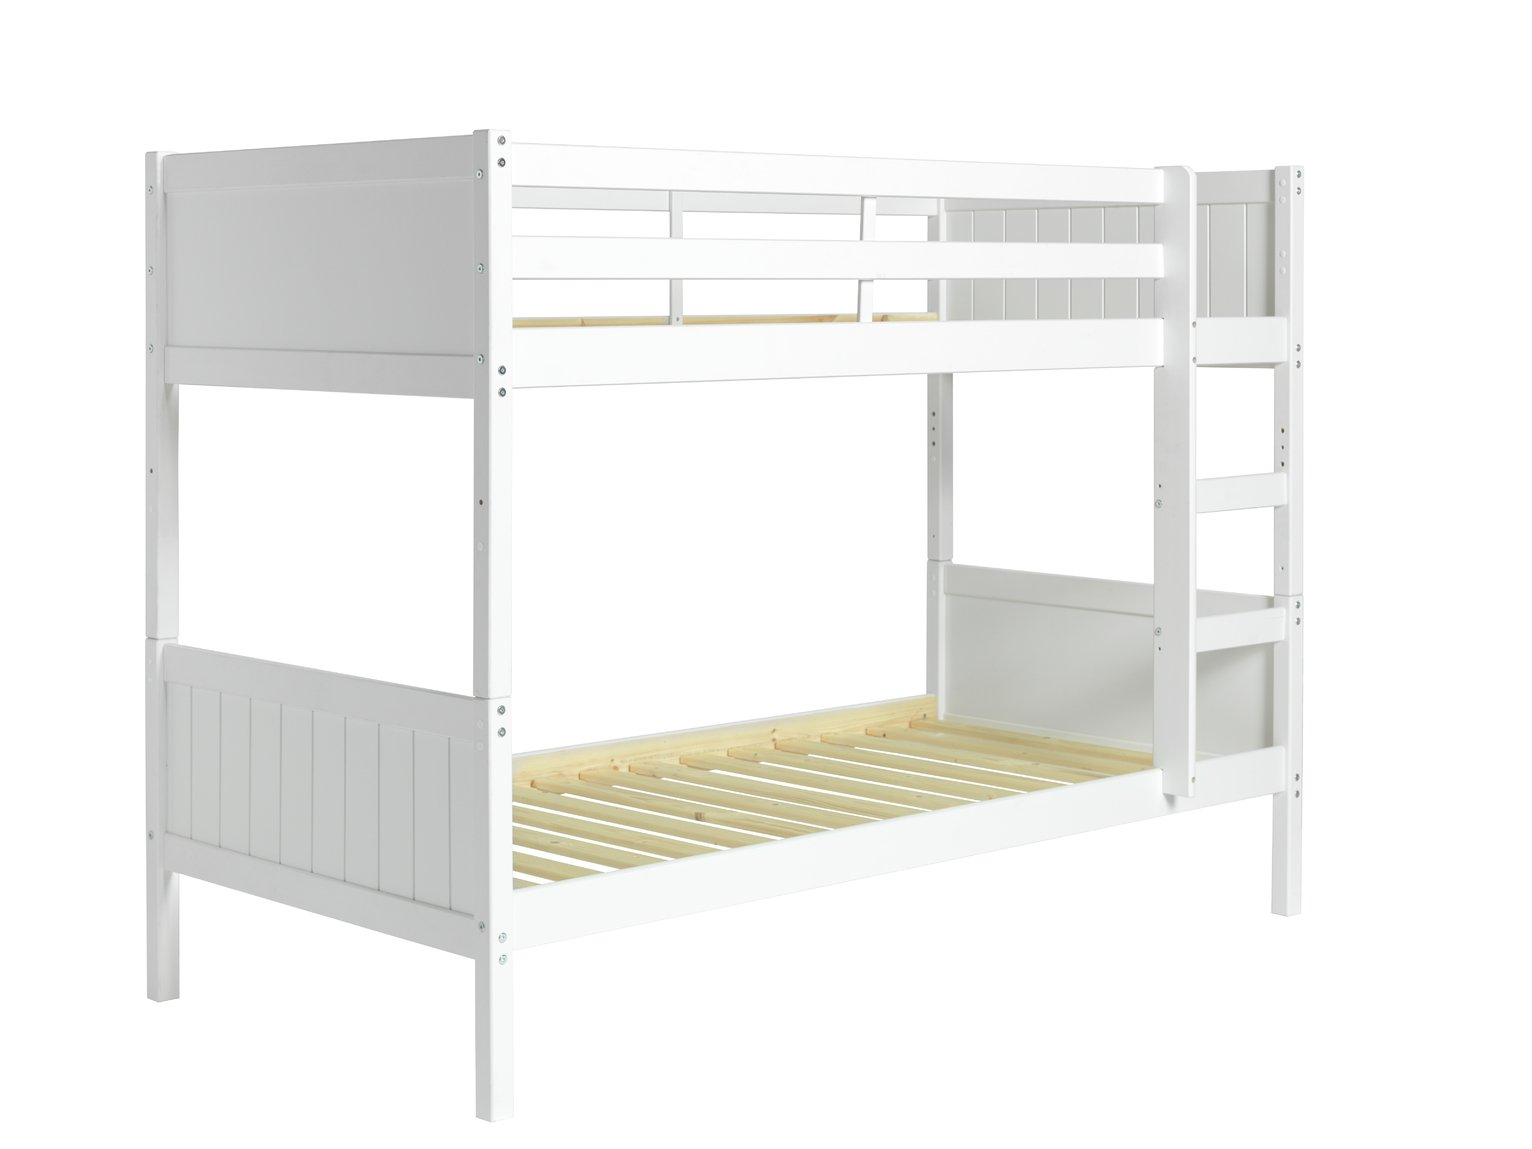 Image of Detachable - Single Bunk Bed with 2 Ashley Mattresses - White